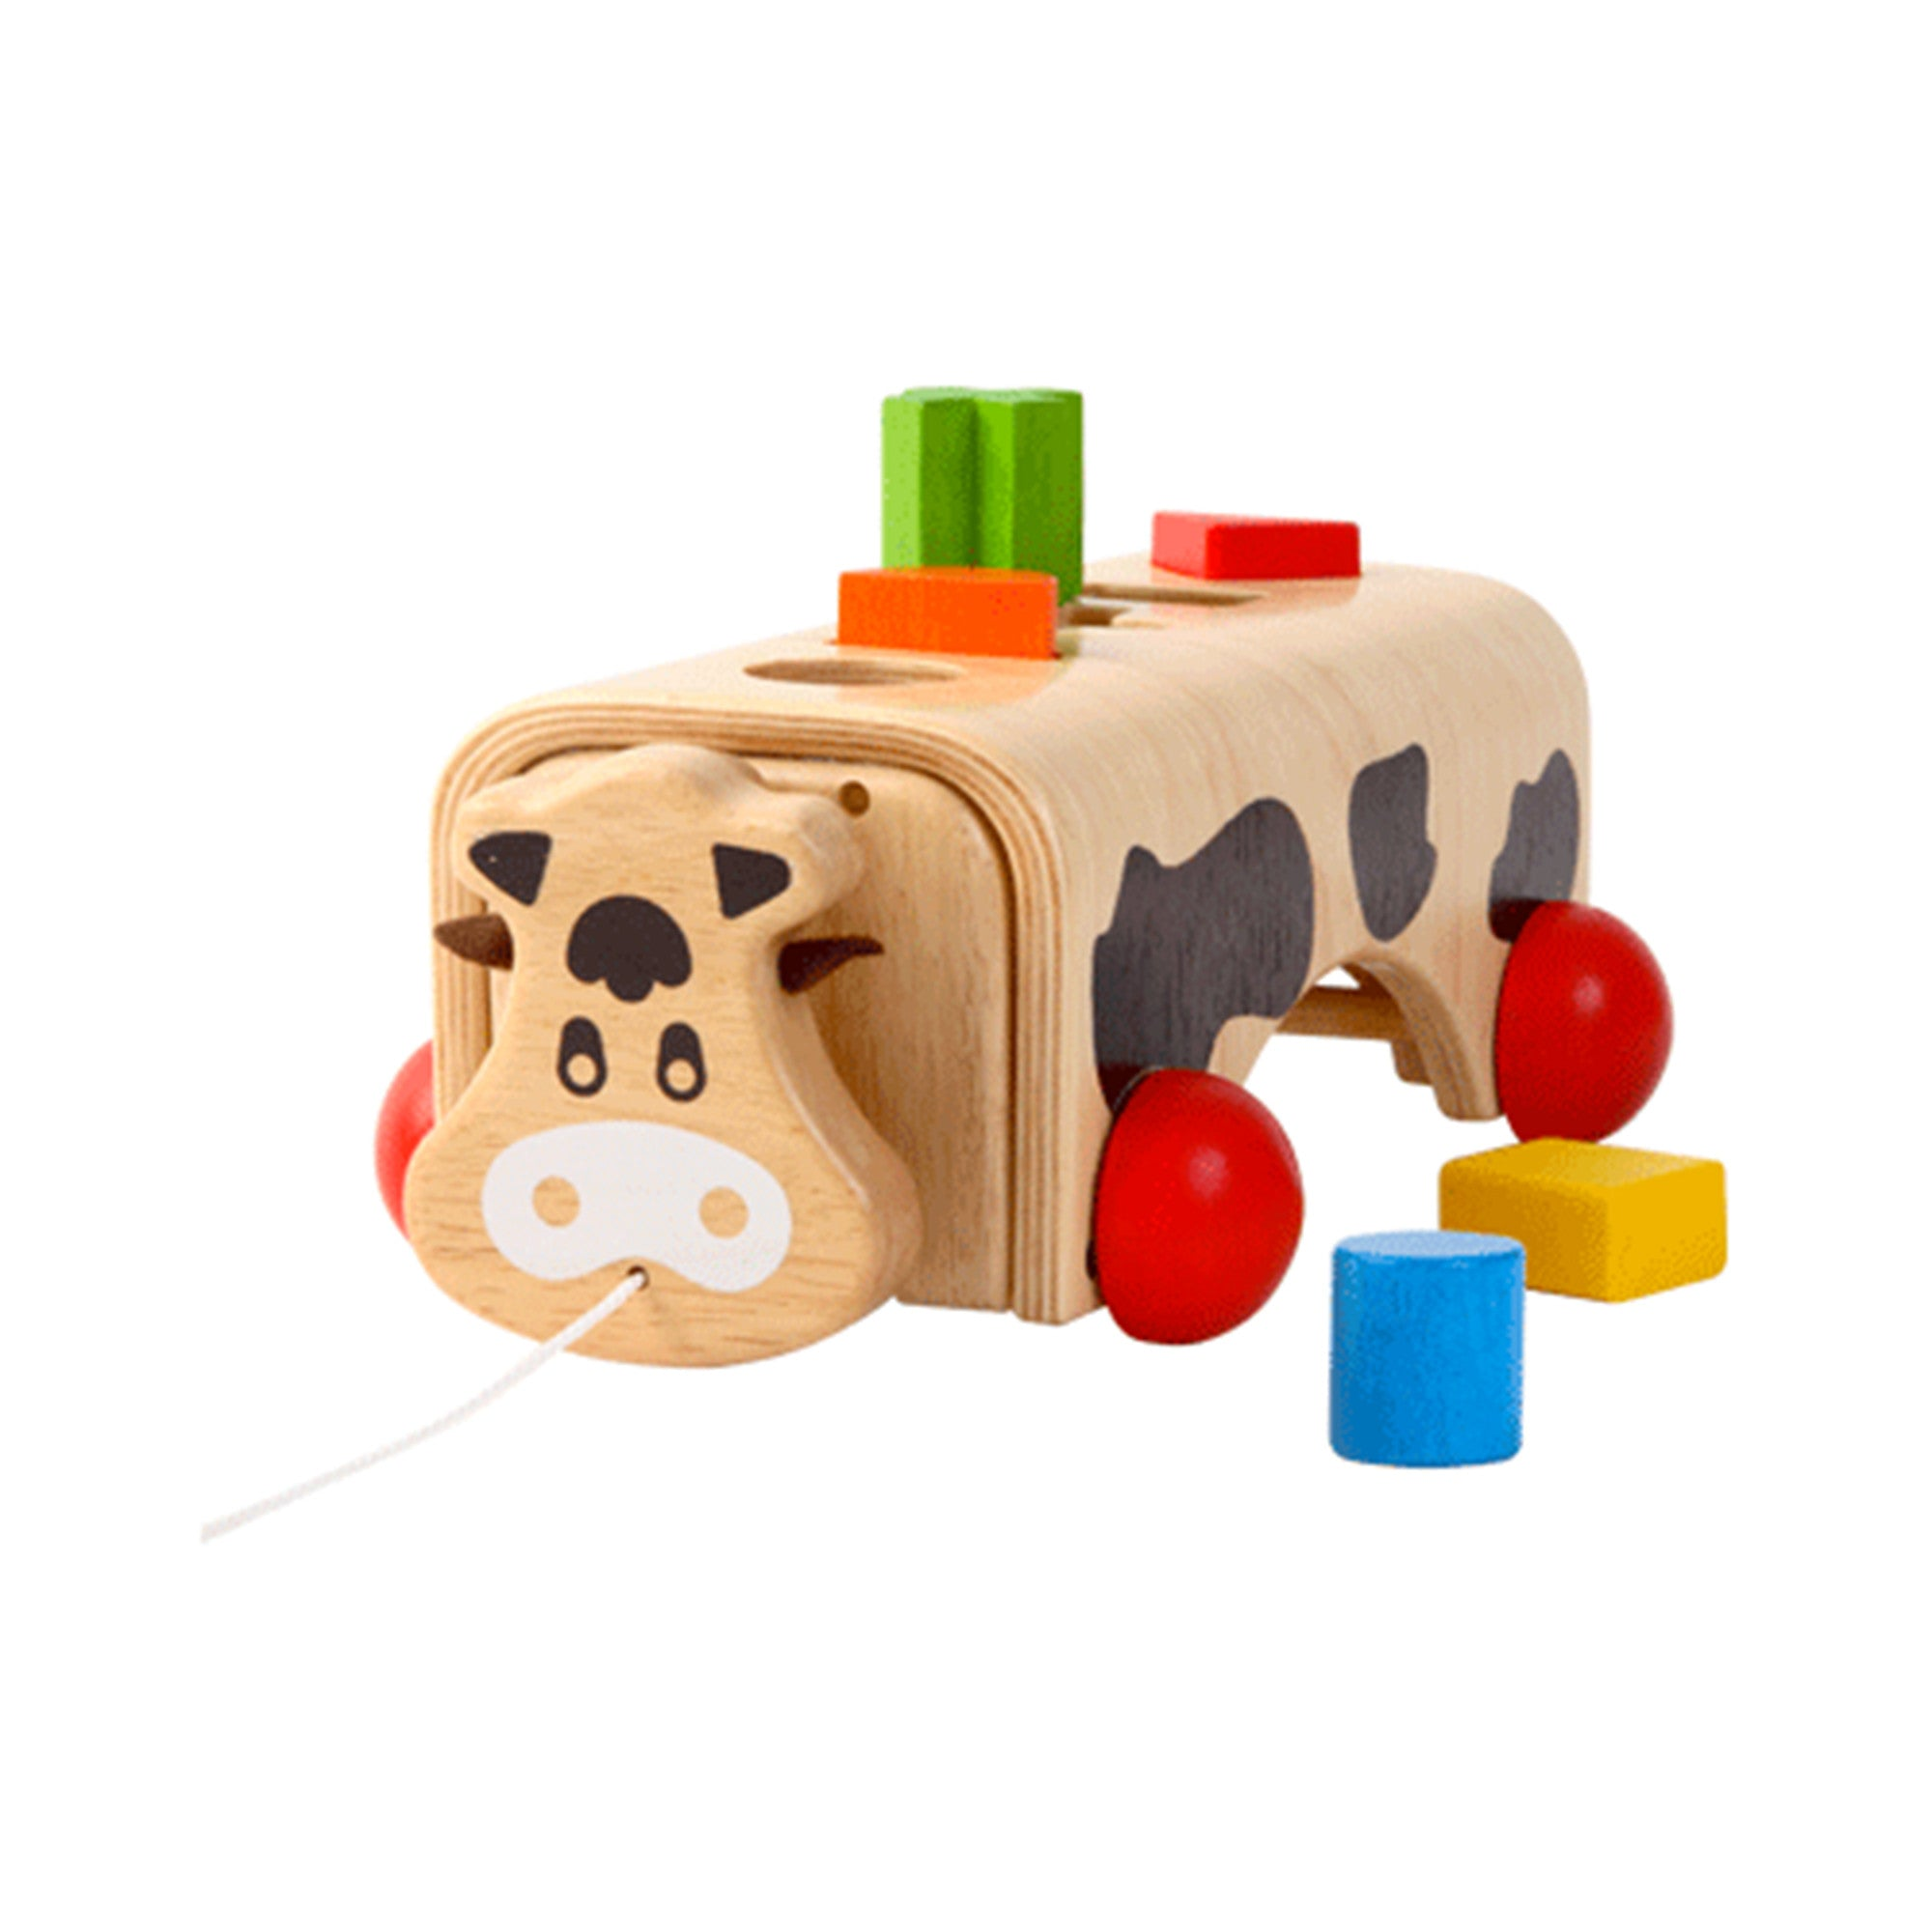 Wooden Geo-Cow Voila Baby Activity Toys at Little Earth Nest Eco Shop